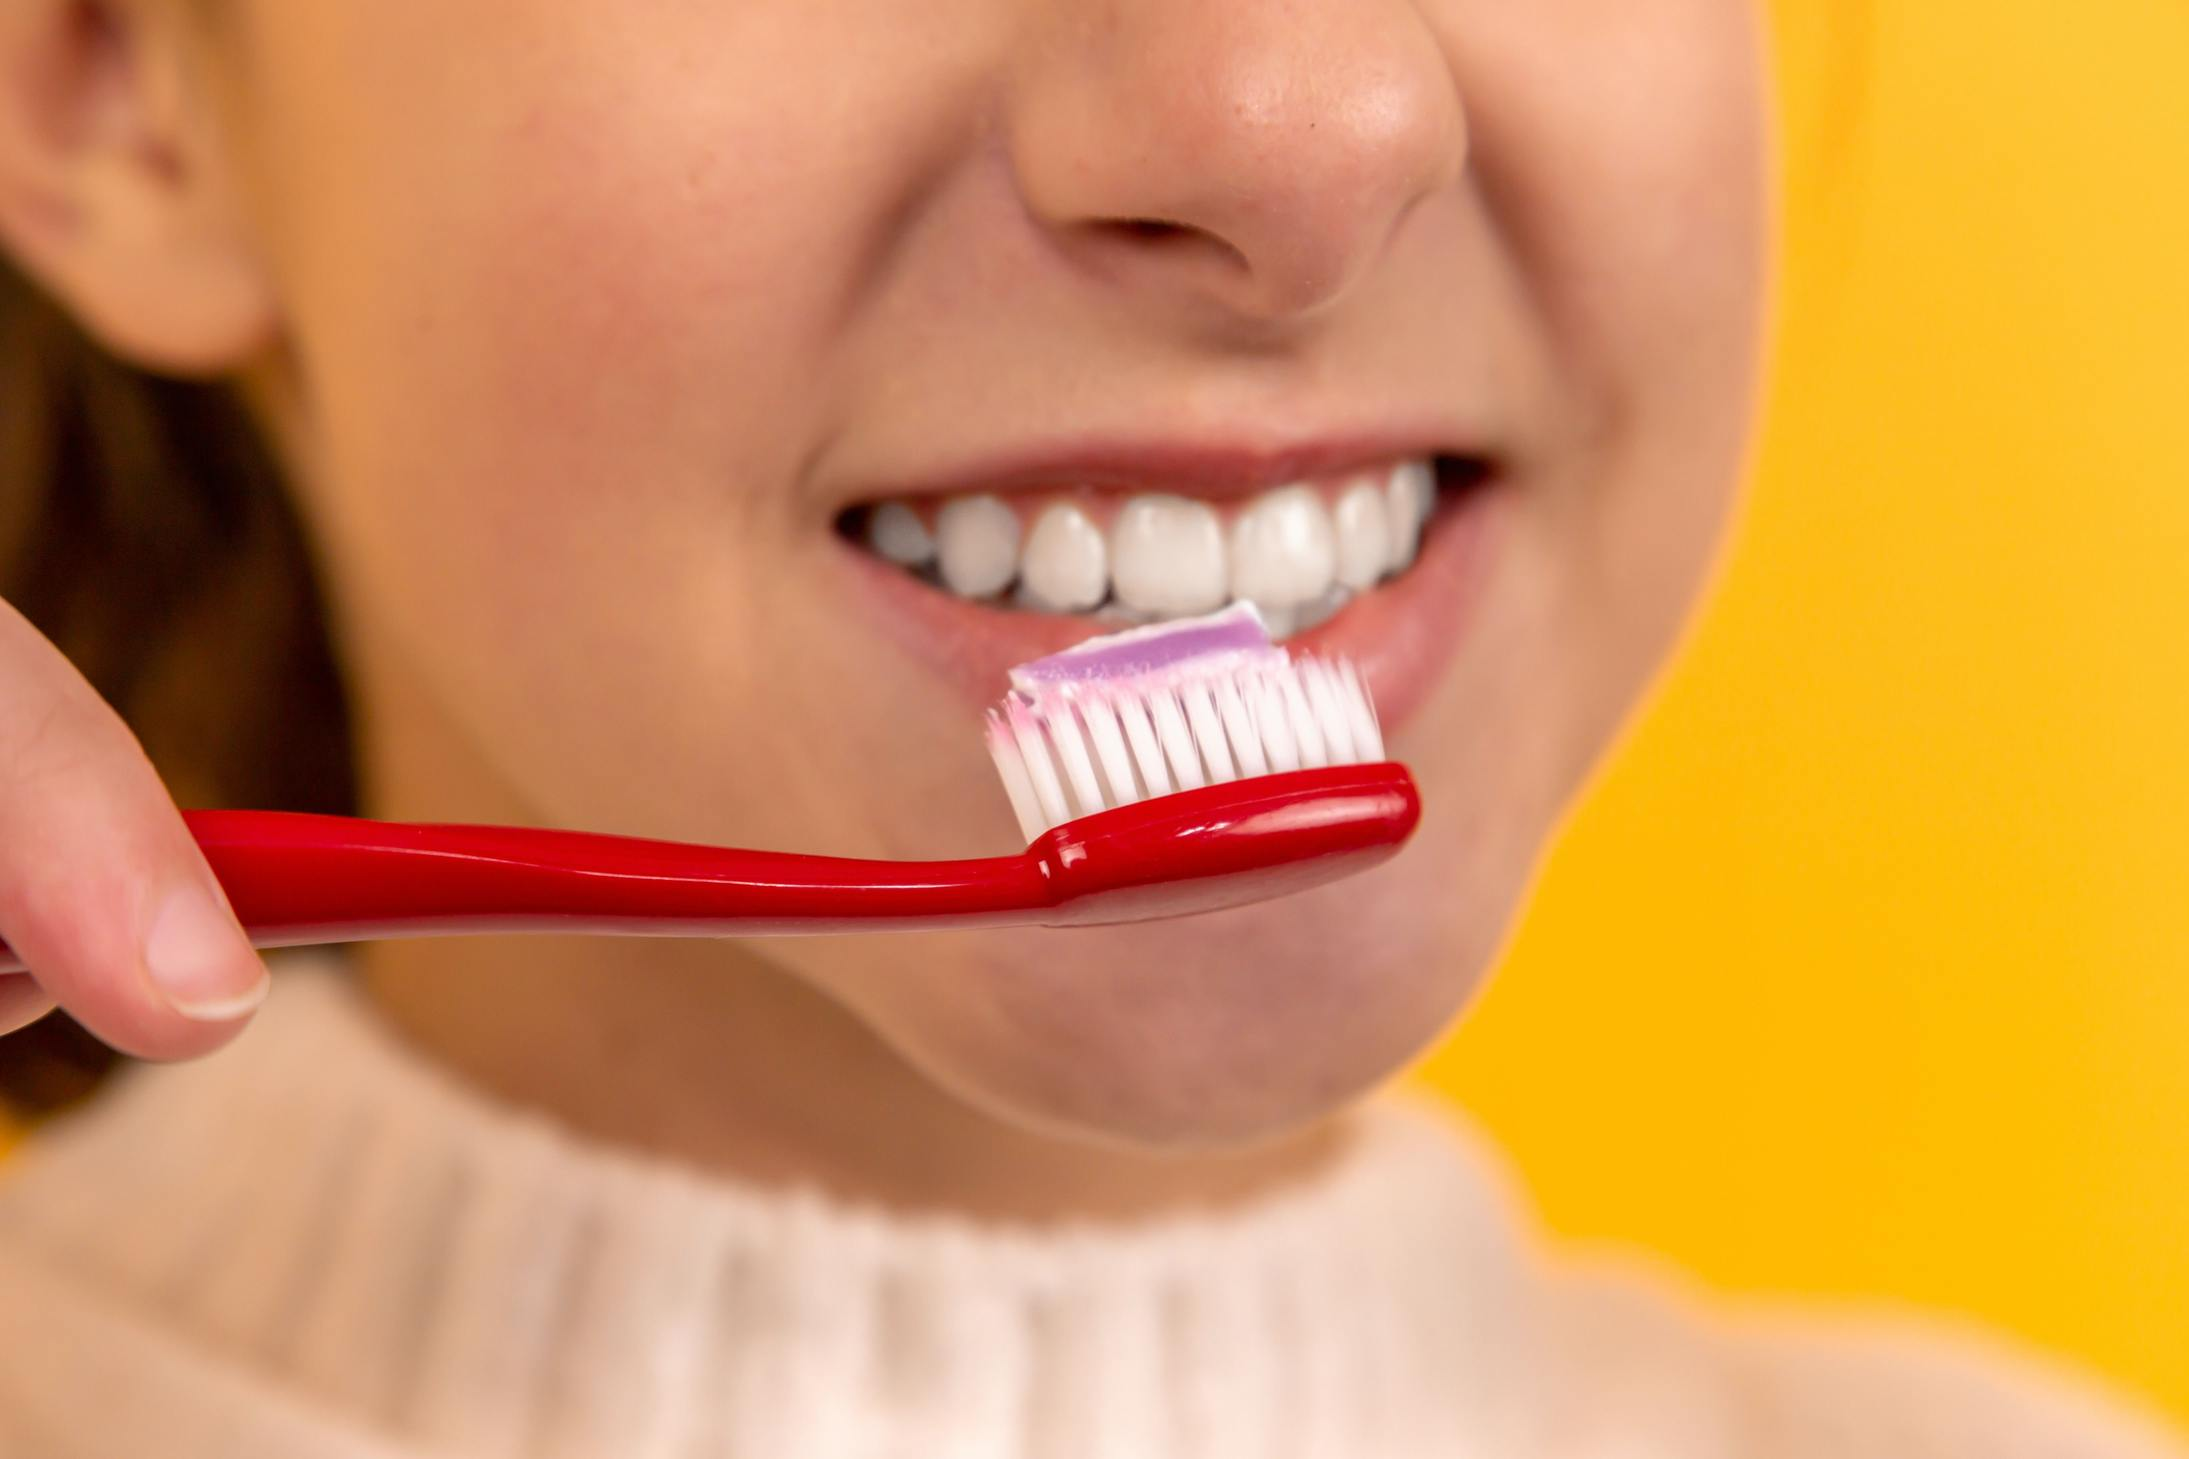 Top Tips for Dental Hygiene and a Healthy Mouth